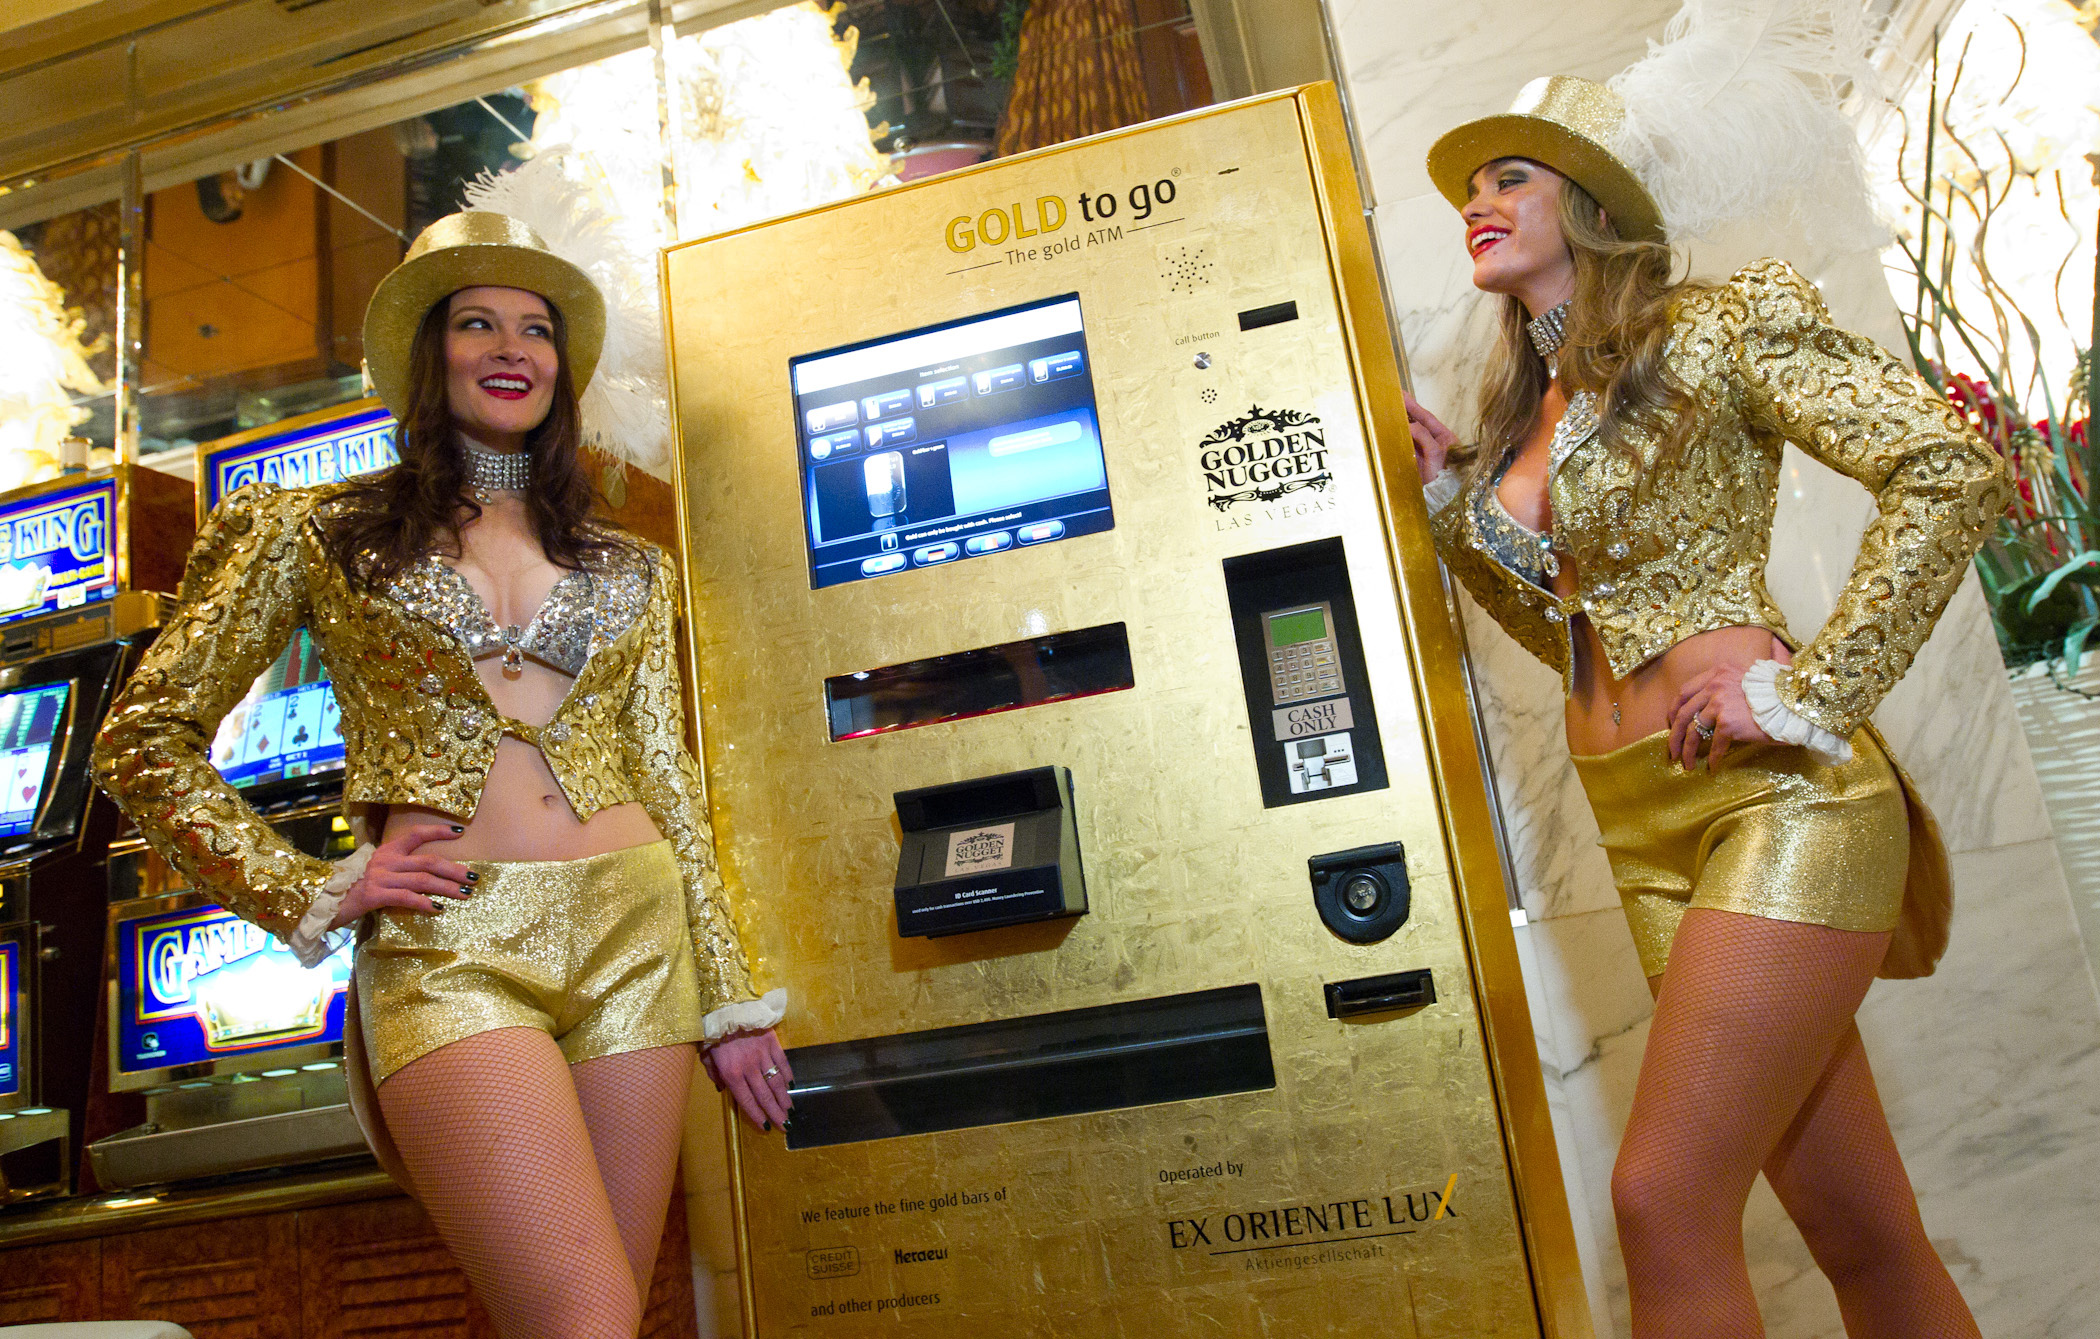 Unveiling of the 1st Gold to Go ATM machine in Las Vegas in the Gold Tower Lobby at the Golden Nugget Casino in 2011. © RD/ Erik Kabik/ Retna Digital